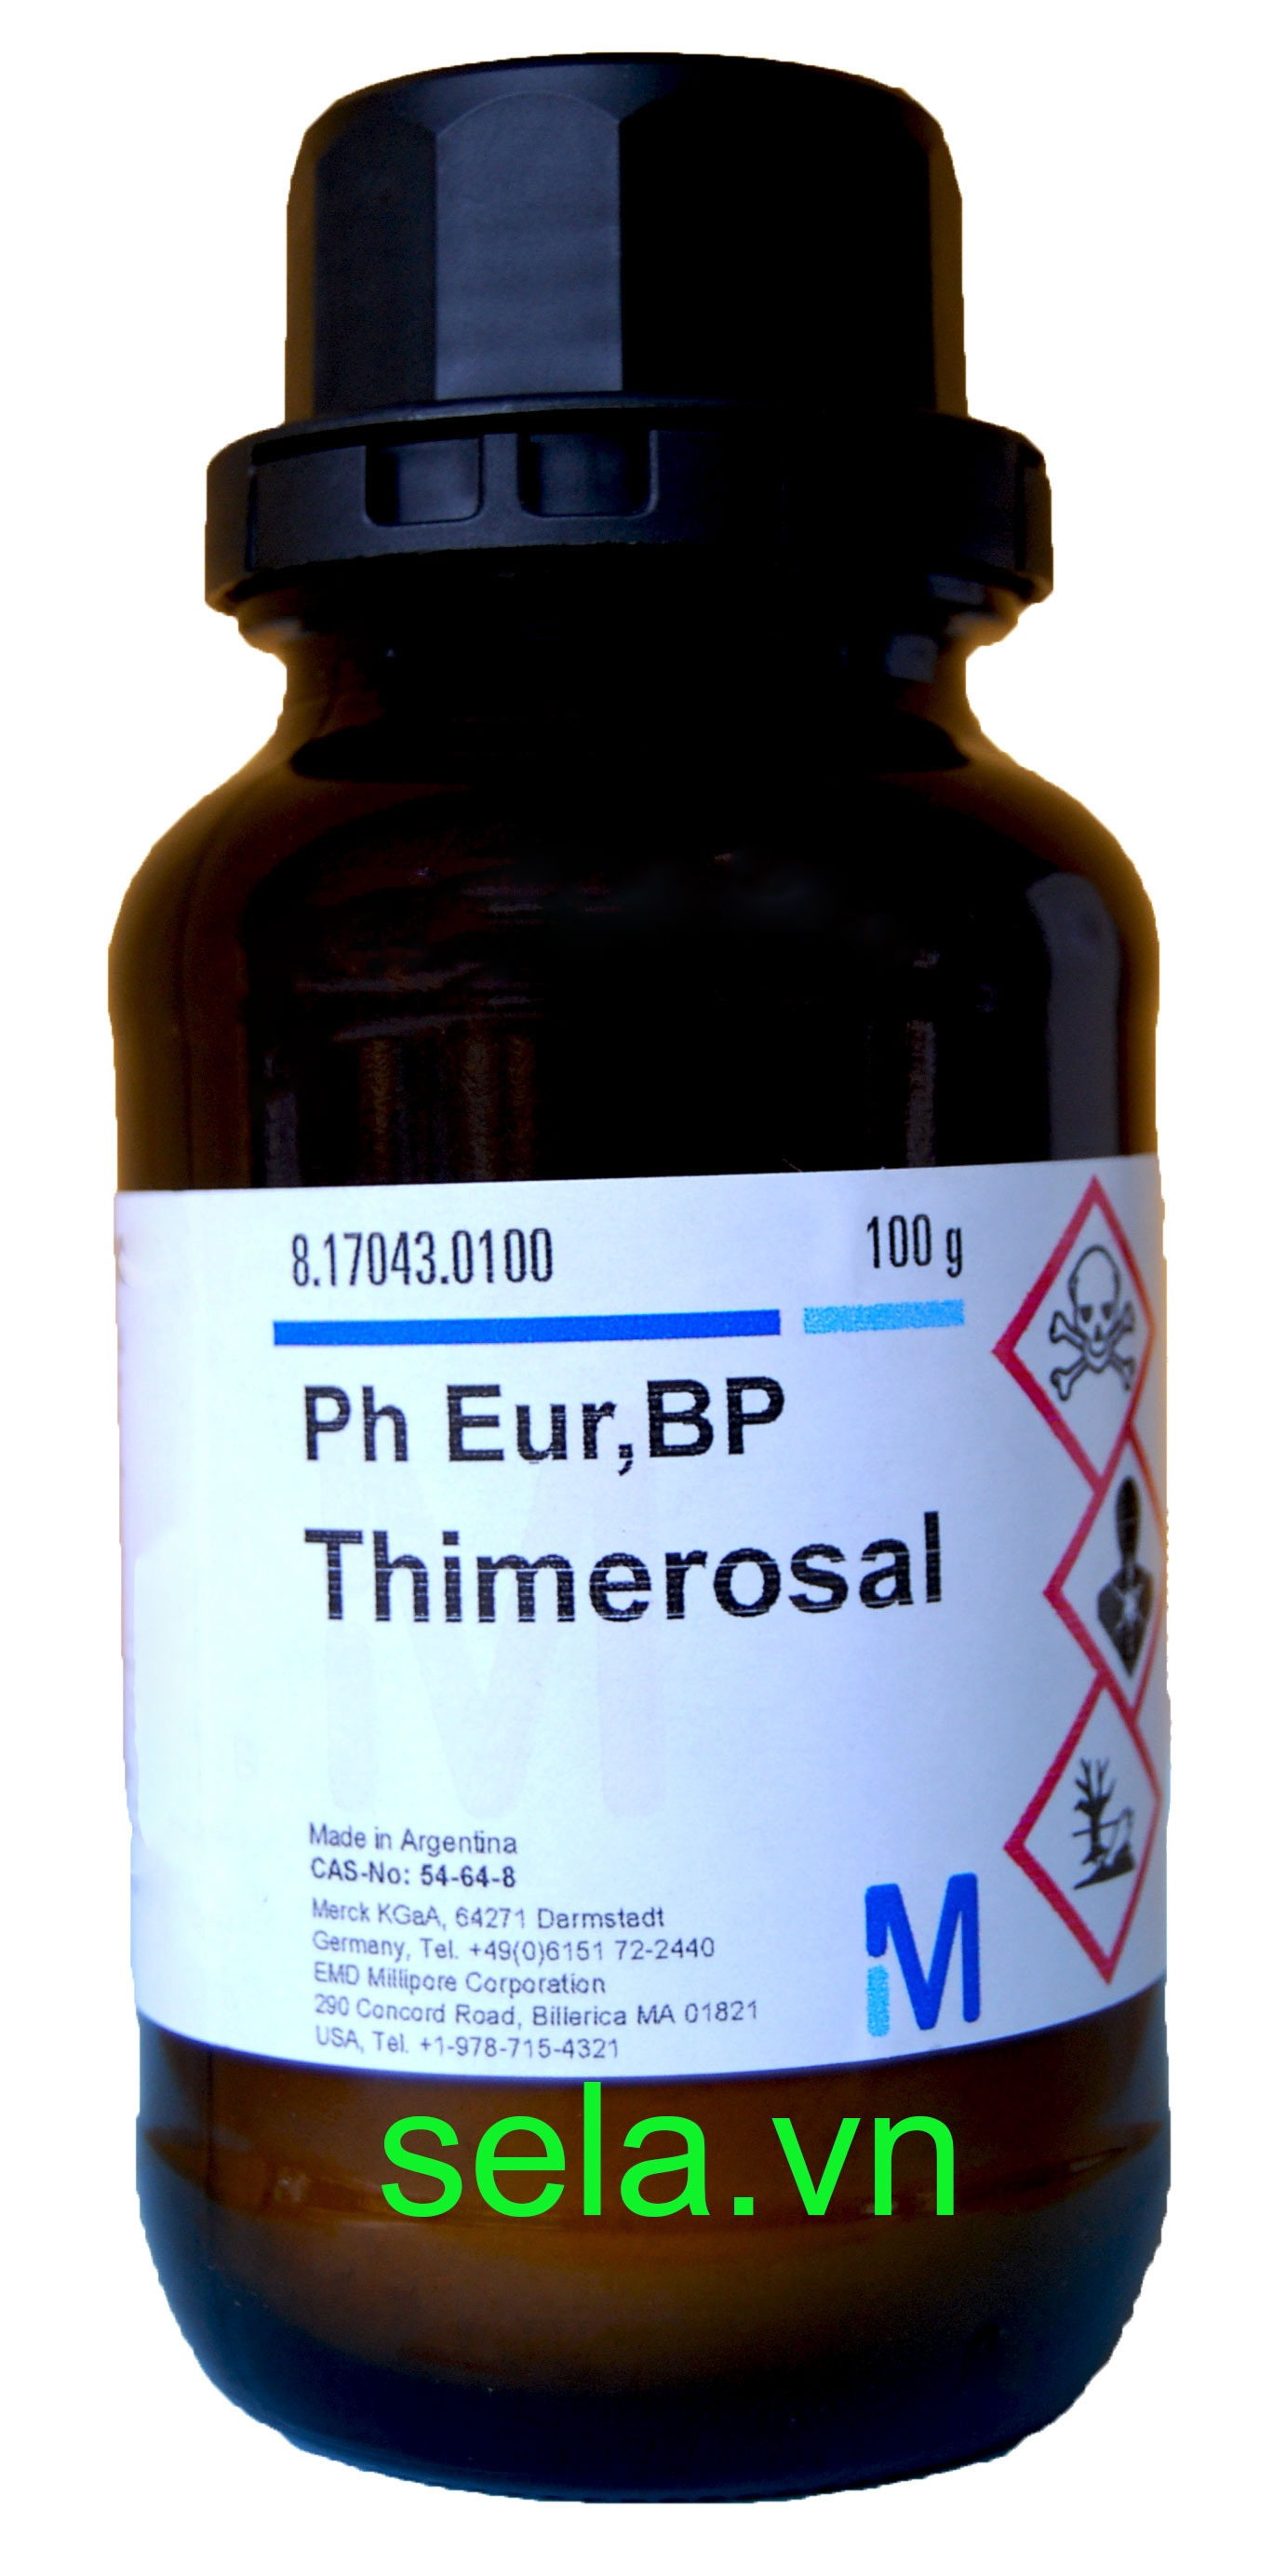 Thimerosal Ph Eur,BP